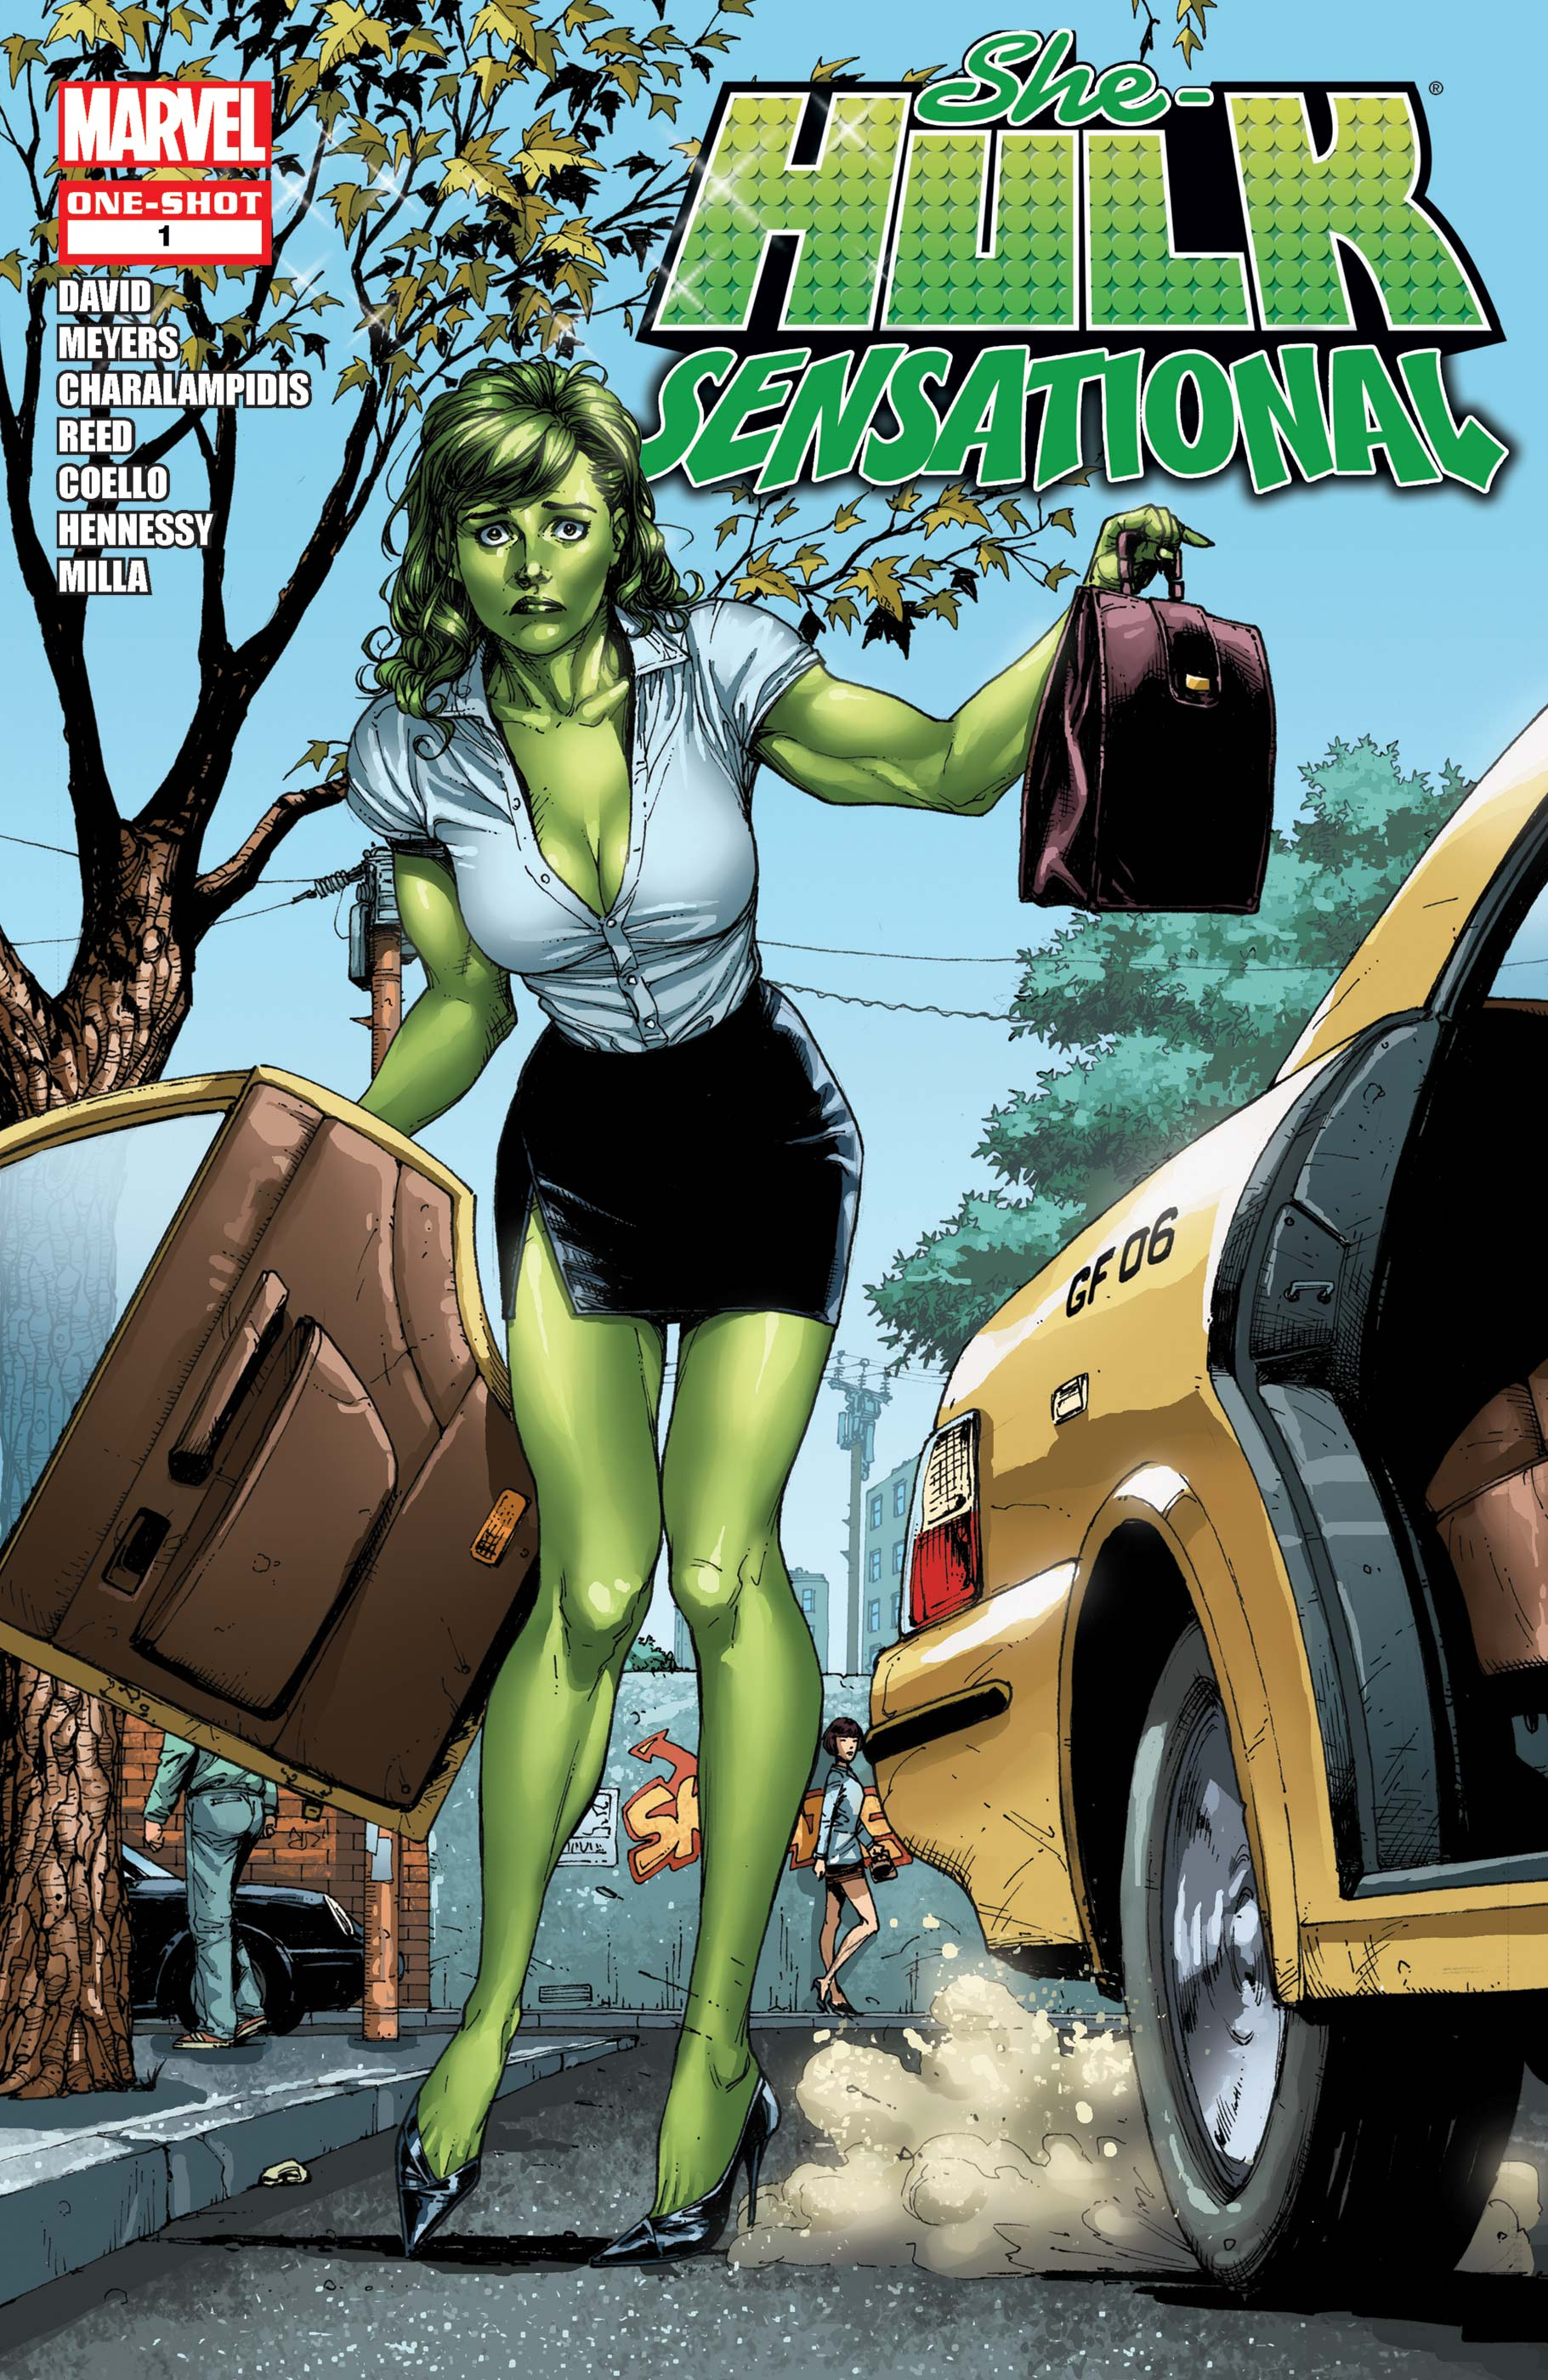 [Image: She-Hulk_Sensational_Vol_1_1.jpg]